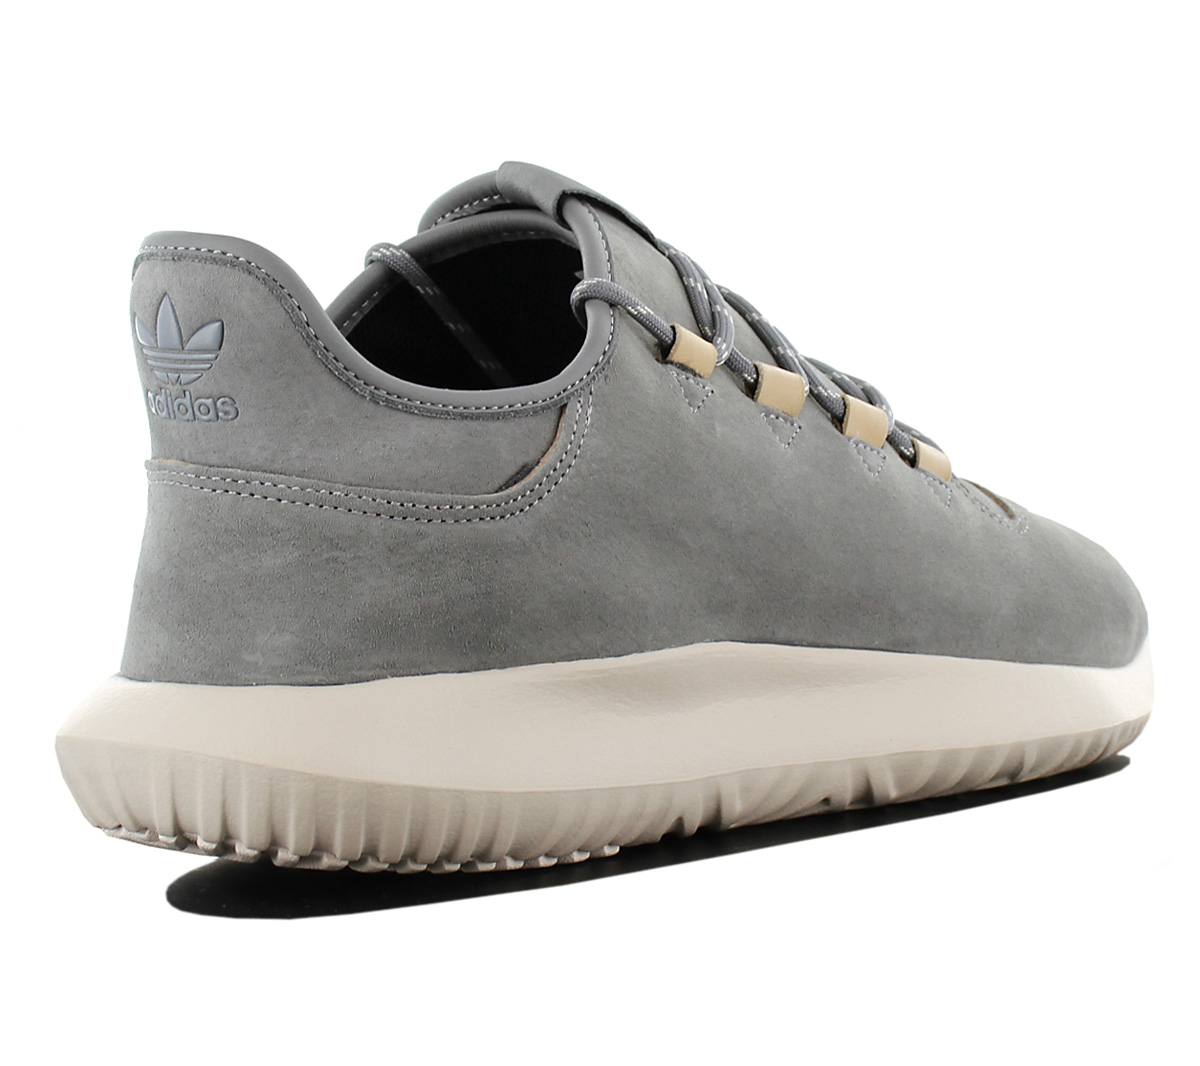 huge discount 9c14c fc4ff Adidas Originals Tubular Shadow Leather Trainers Shoes Leath